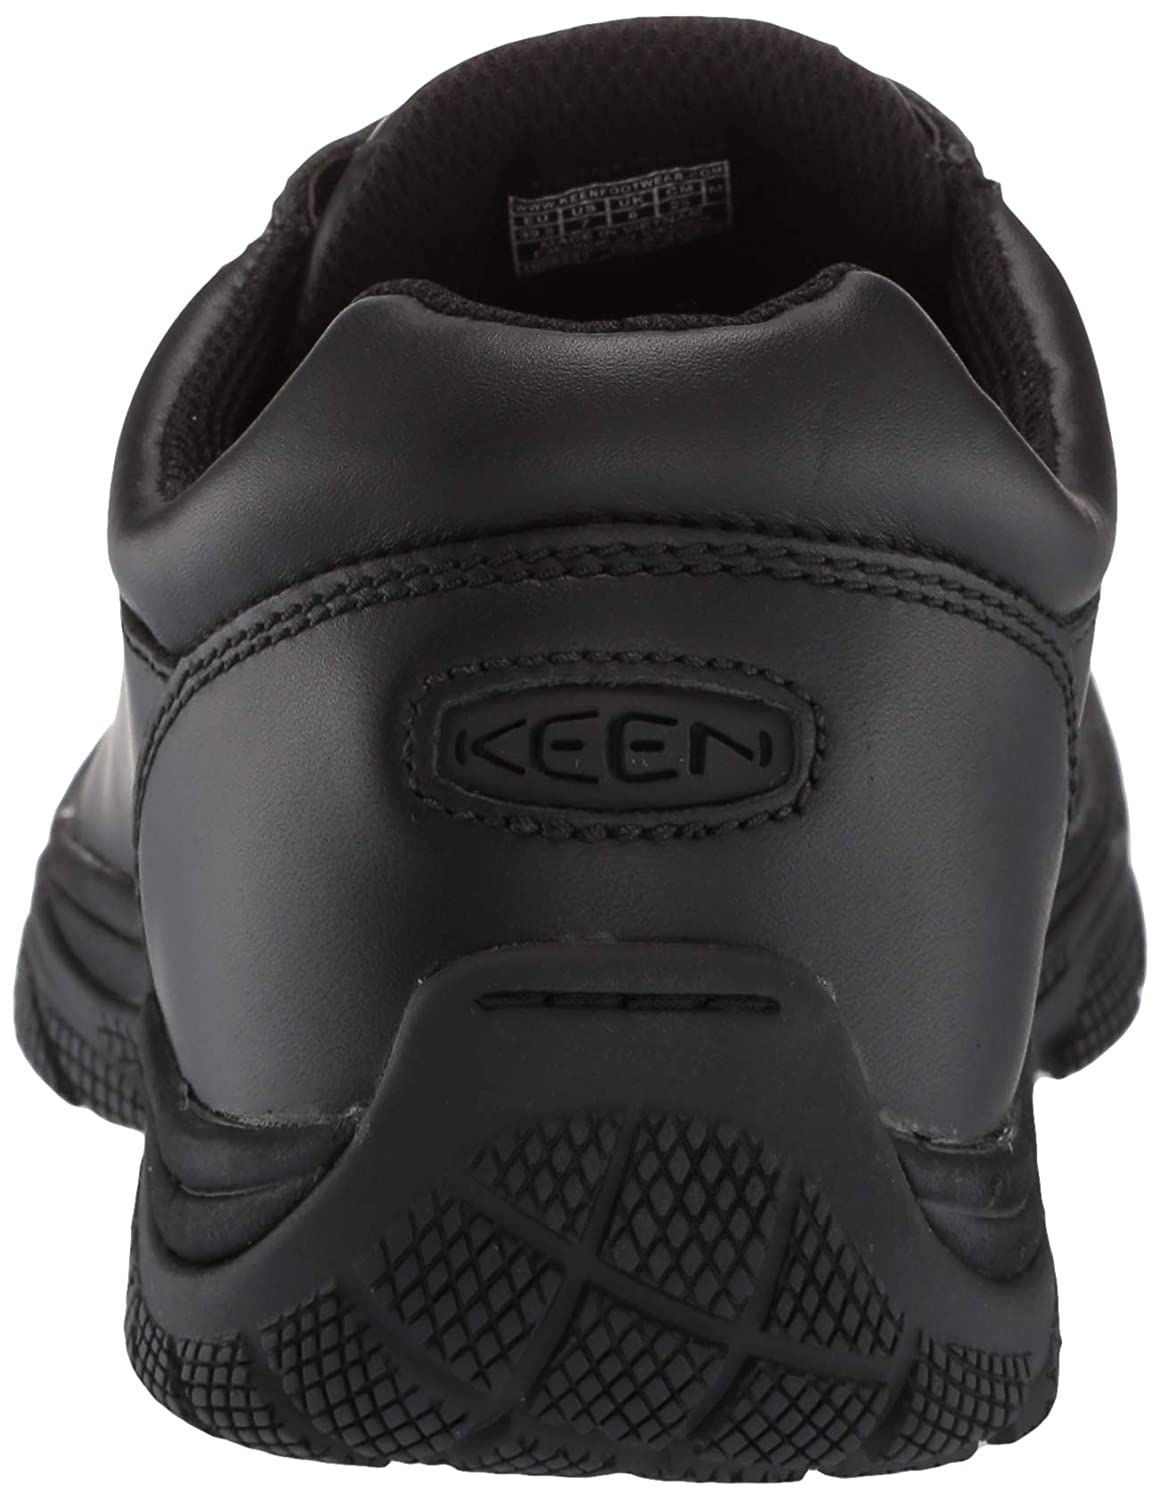 Keen Keen Keen Utility Men's PTC Dress Oxford Work schuhe,schwarz,8 M US f74303